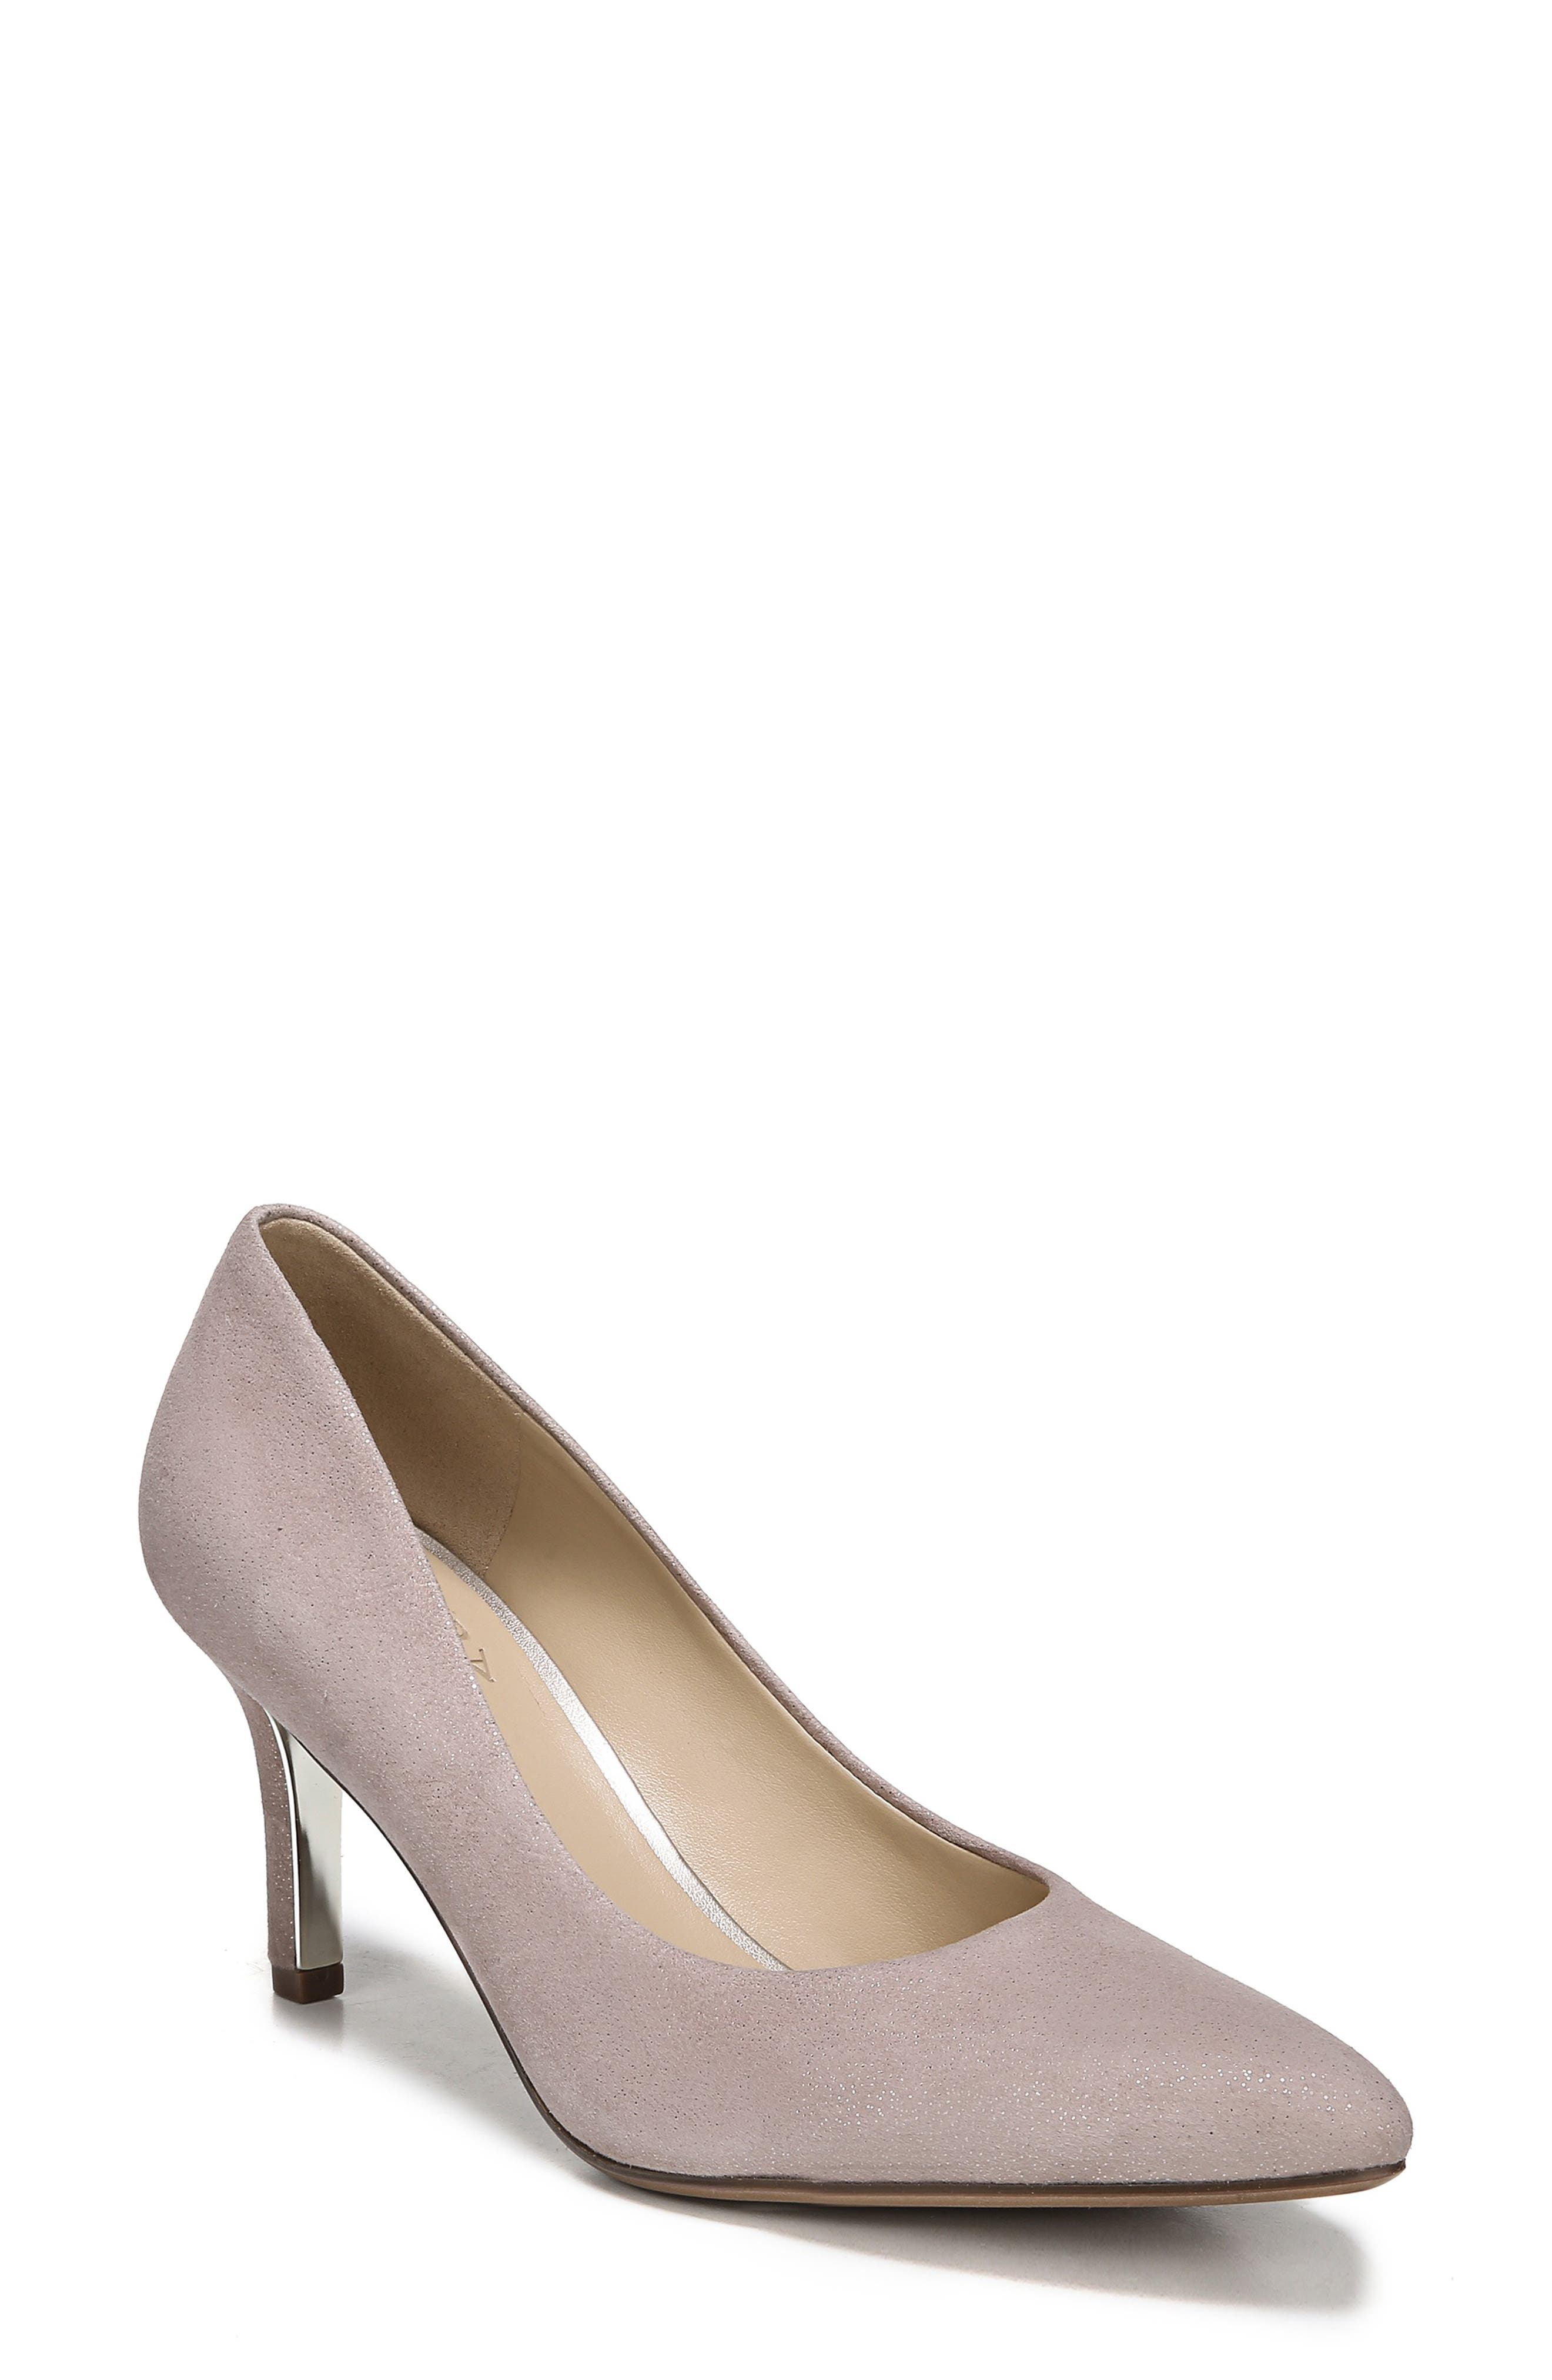 NATURALIZER Natalie Pump, Main, color, TAUPE GLITTER DUST SUEDE